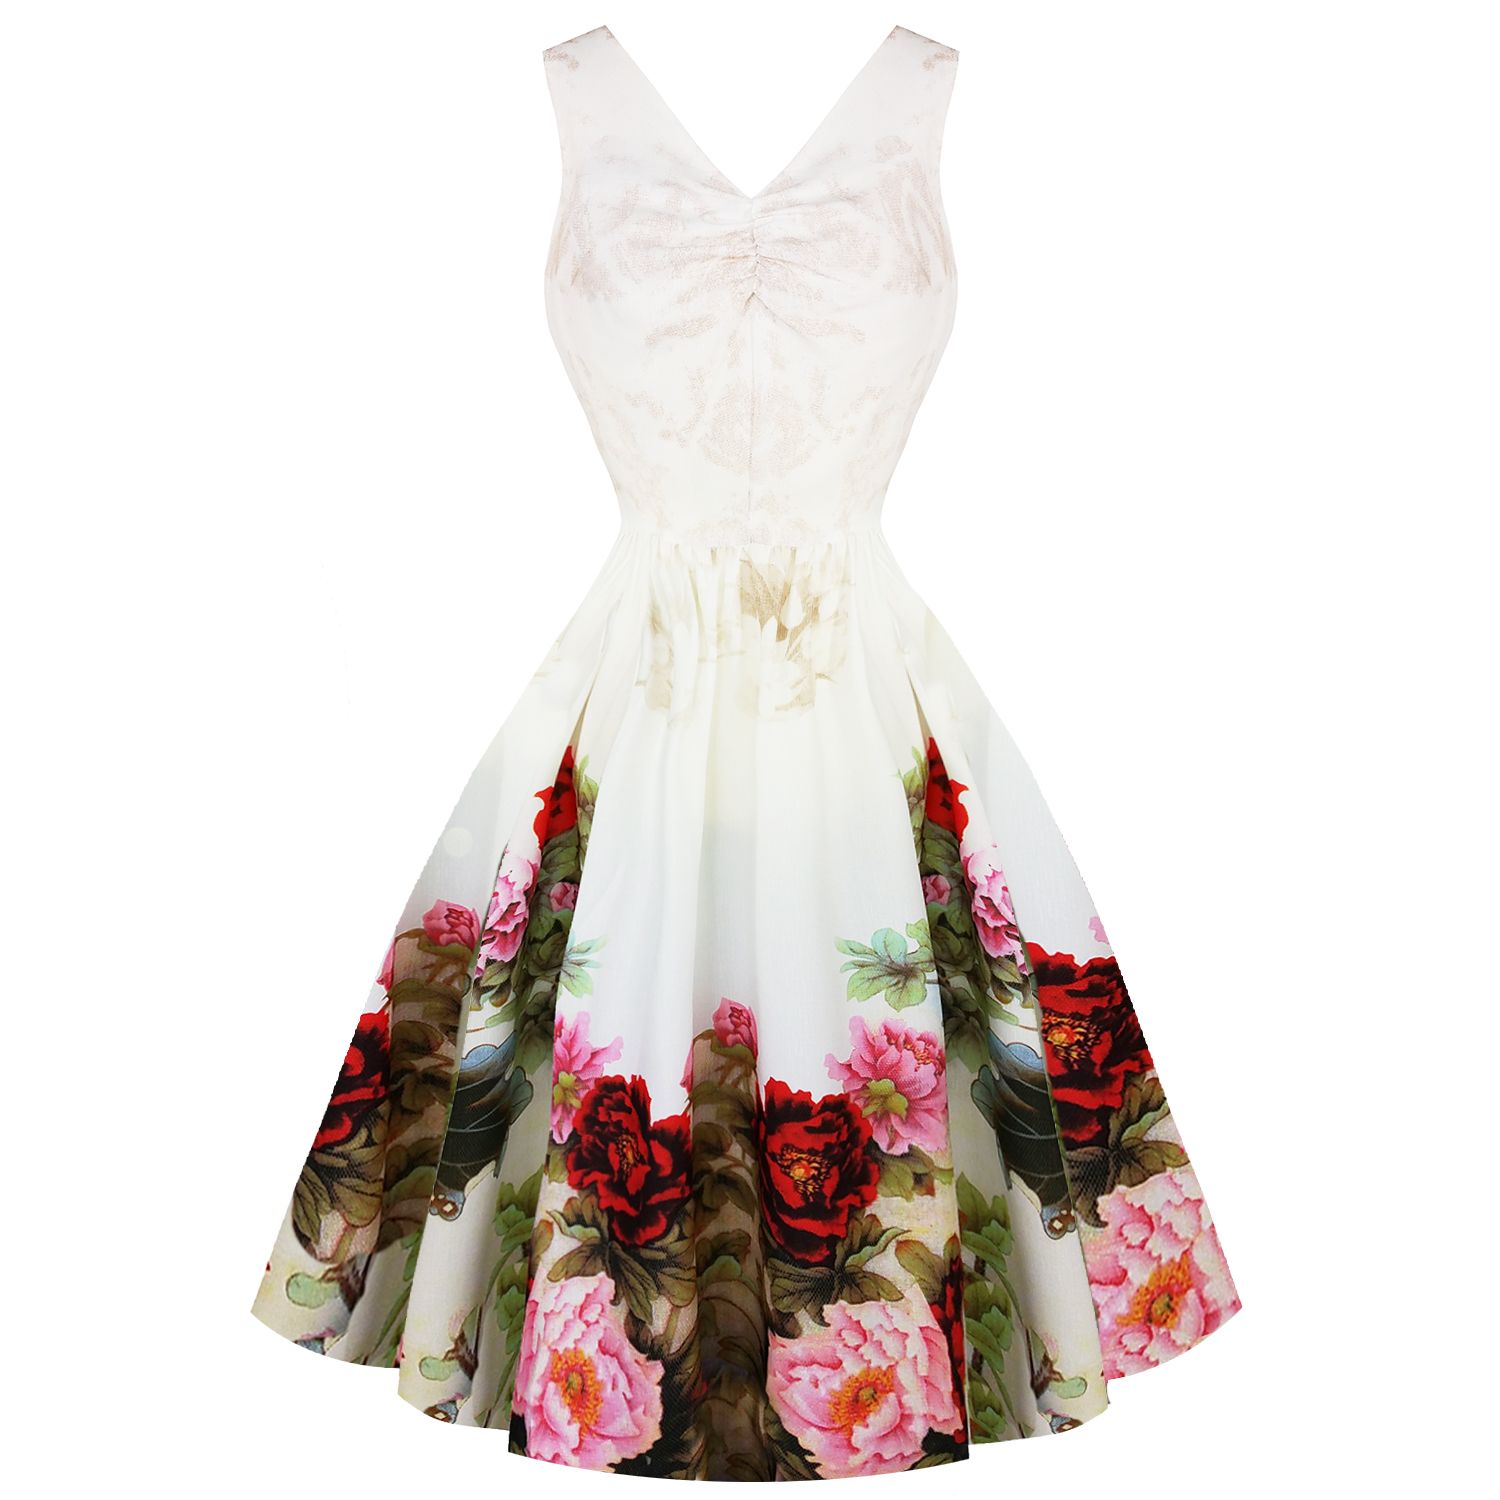 Hearts roses london white english rose 1950 dress for Wedding dresses with roses on them